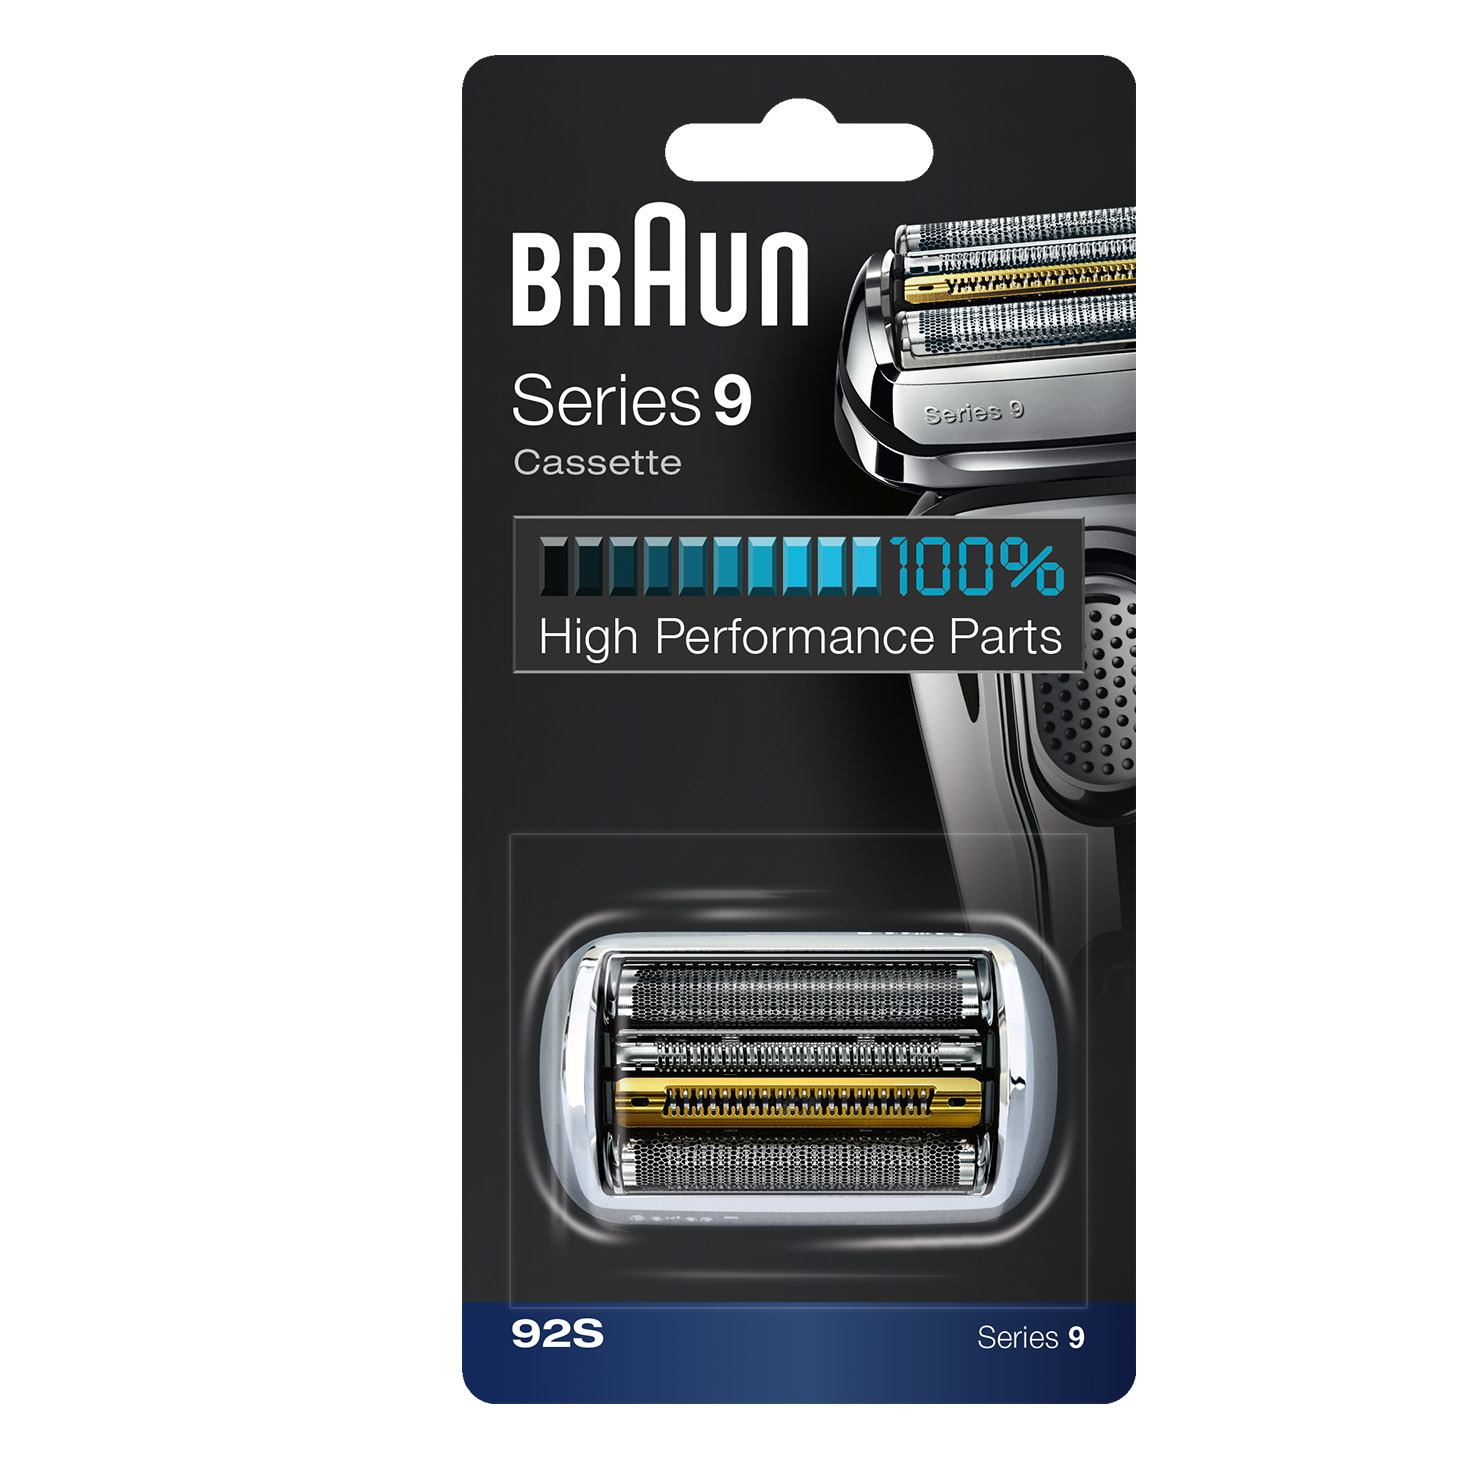 Braun Series 9 Combi 92S Cassette Replacement pack